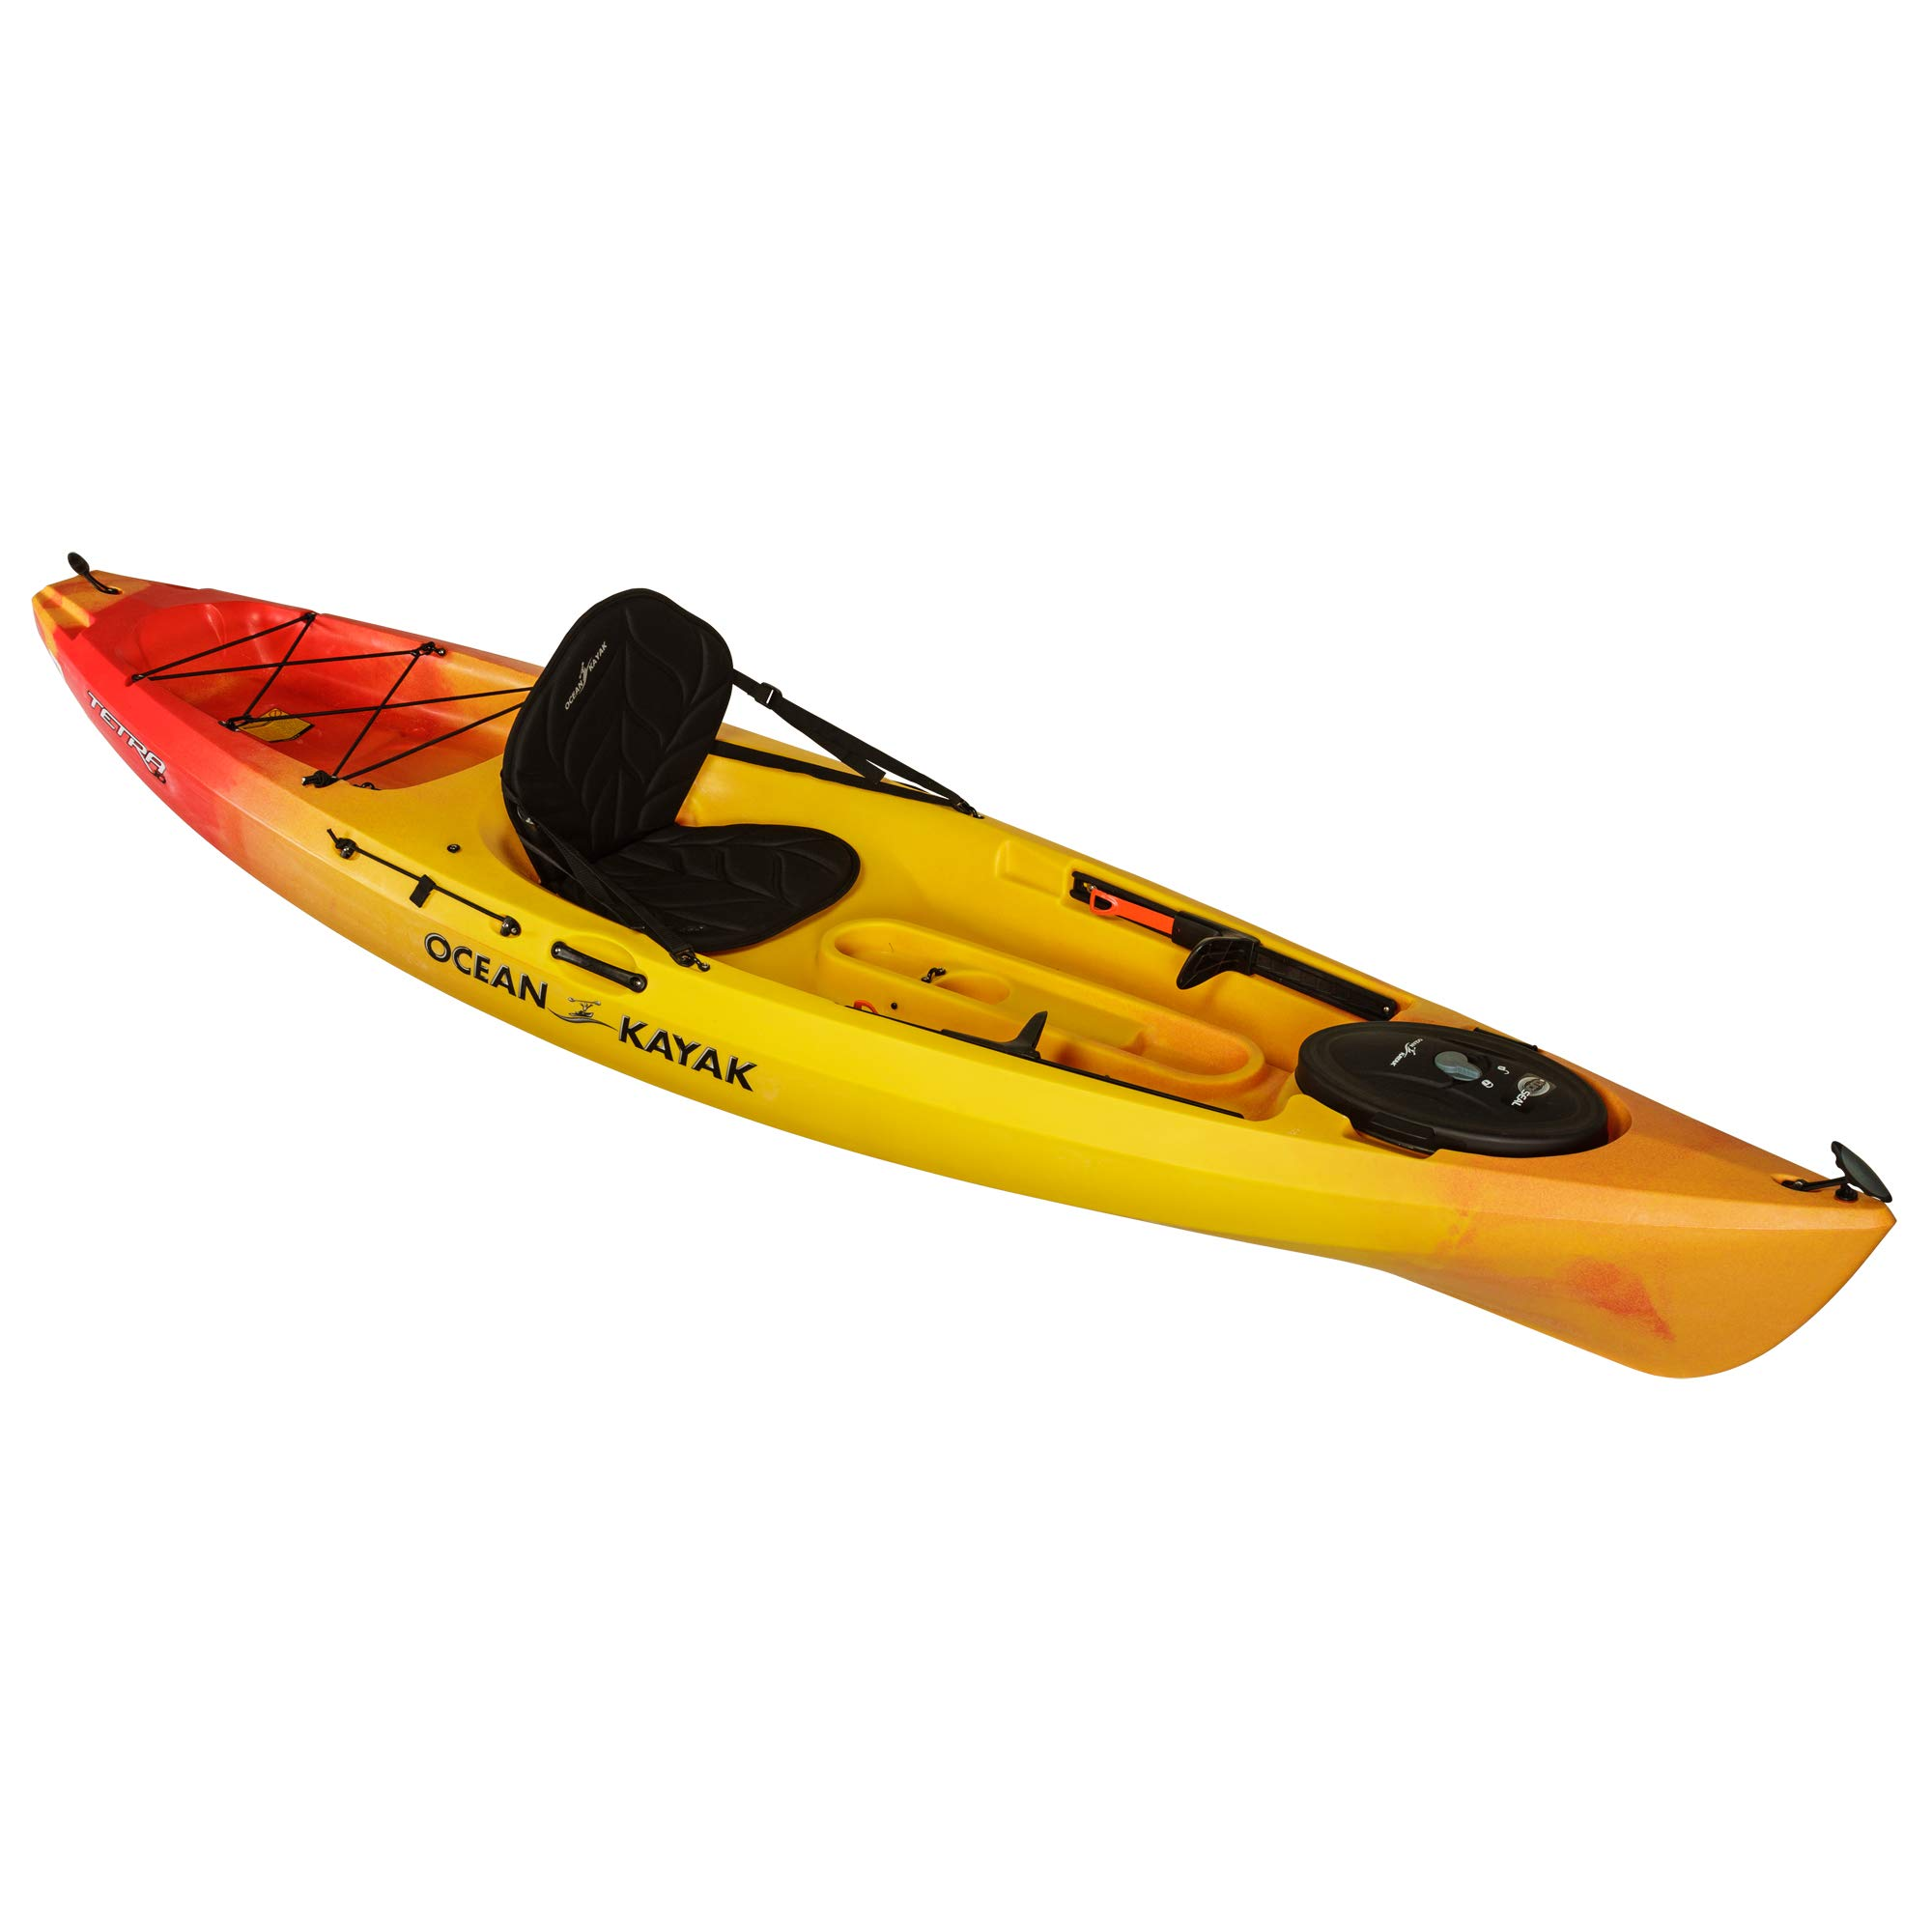 Ocean Kayak Tetra 10 One-Person Sit-On-Top Kayak, Sunrise, 10 Feet 8 Inches